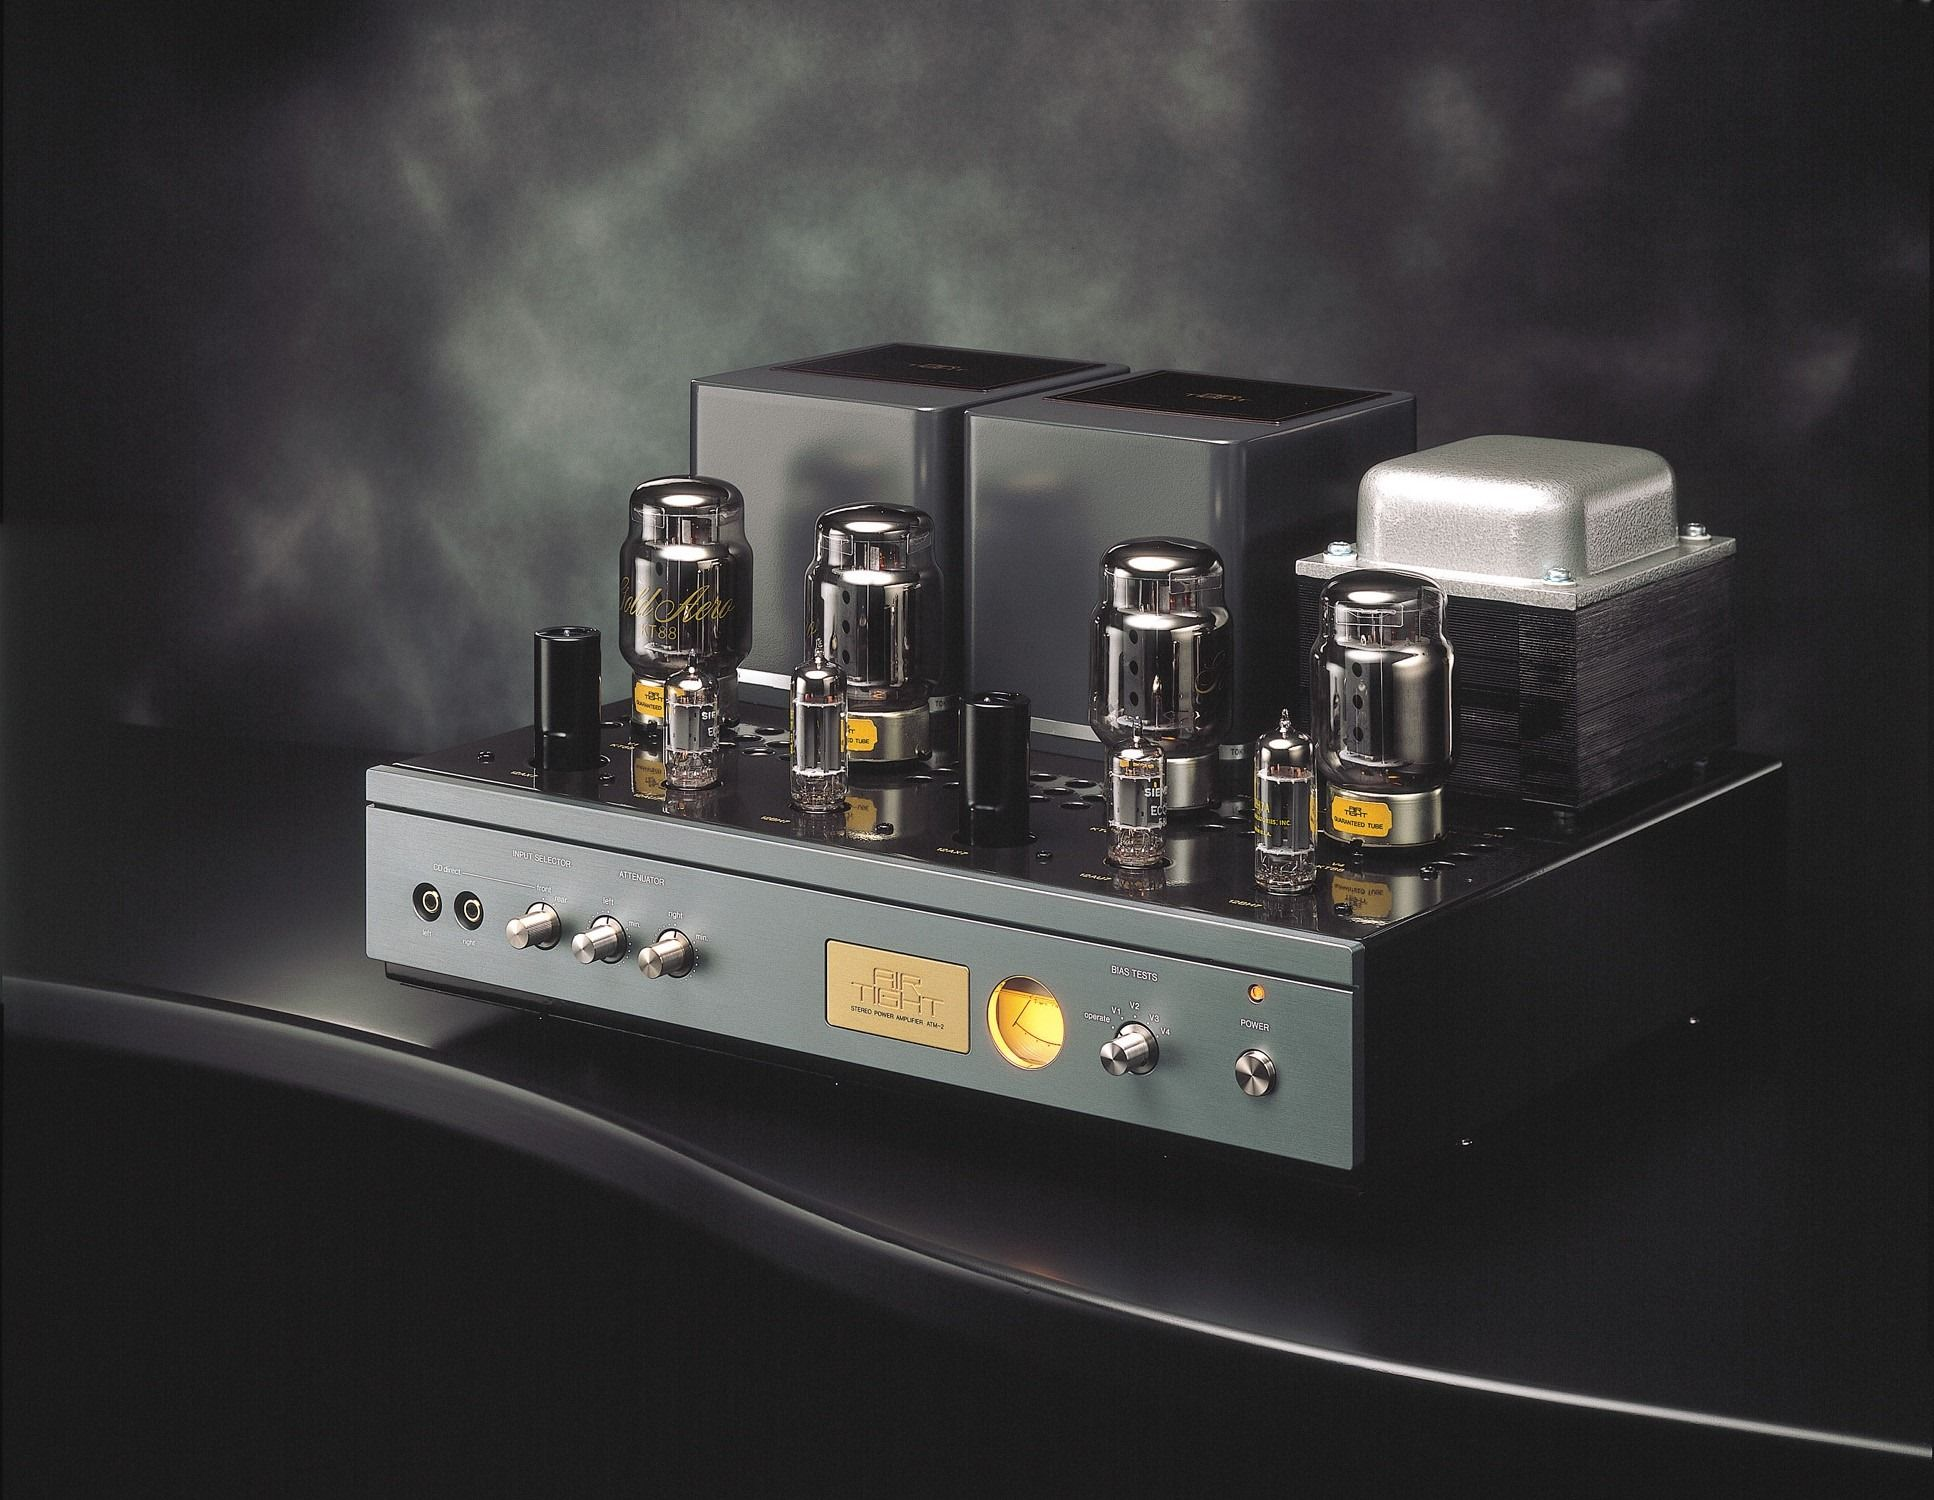 Air Tight Amp With Images Valve Amplifier Audio Amplifier